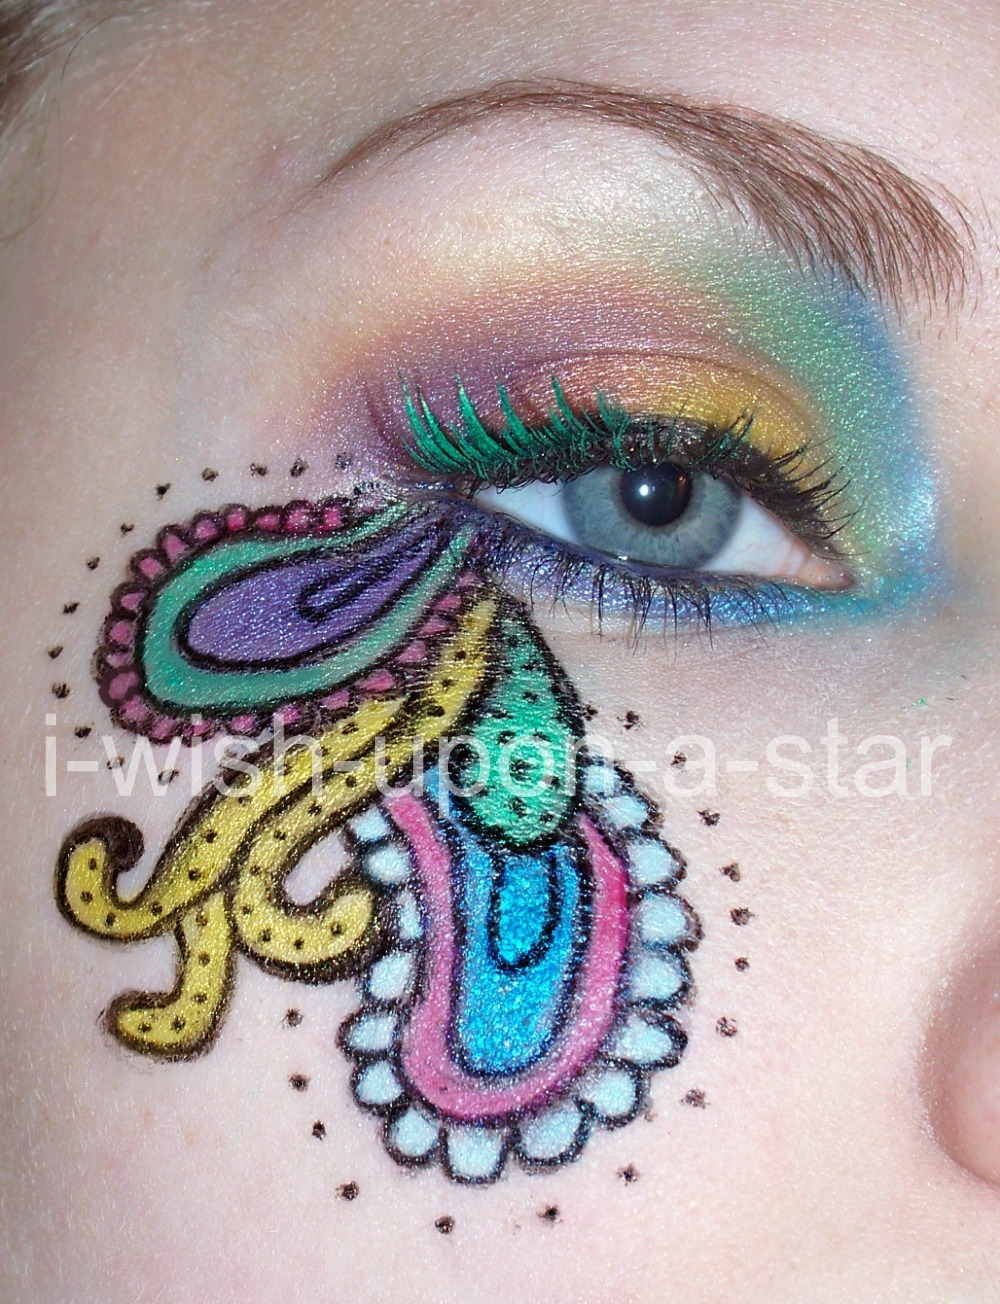 Paisley pattern eye makeup by i wish upon a star on deviantart paisley pattern eye makeup by i wish upon a star ccuart Images